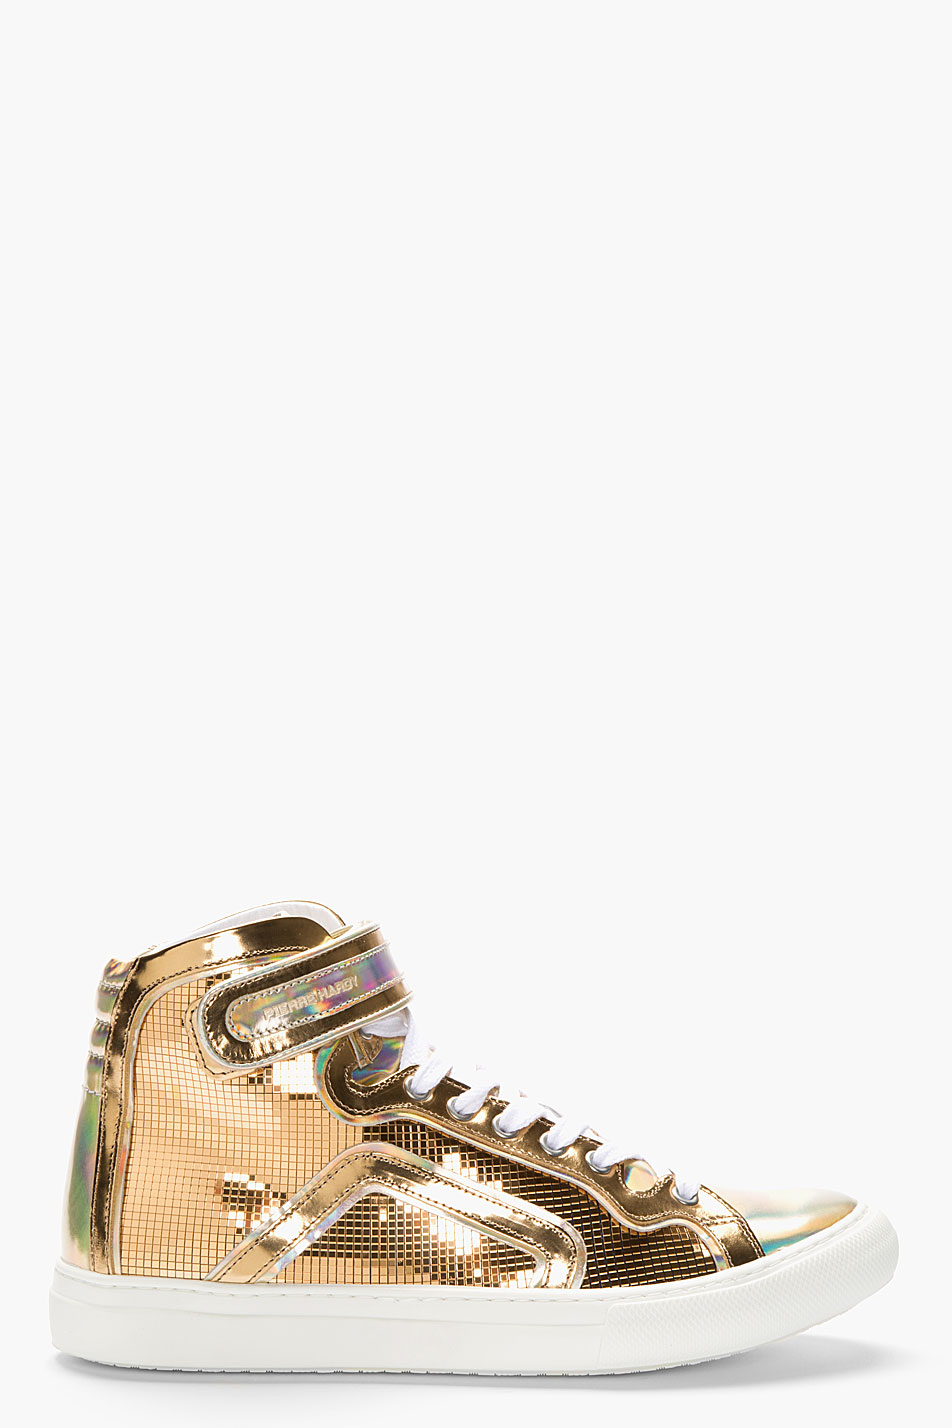 Lyst Pierre Hardy Metallic Gold Leather Disco High Top